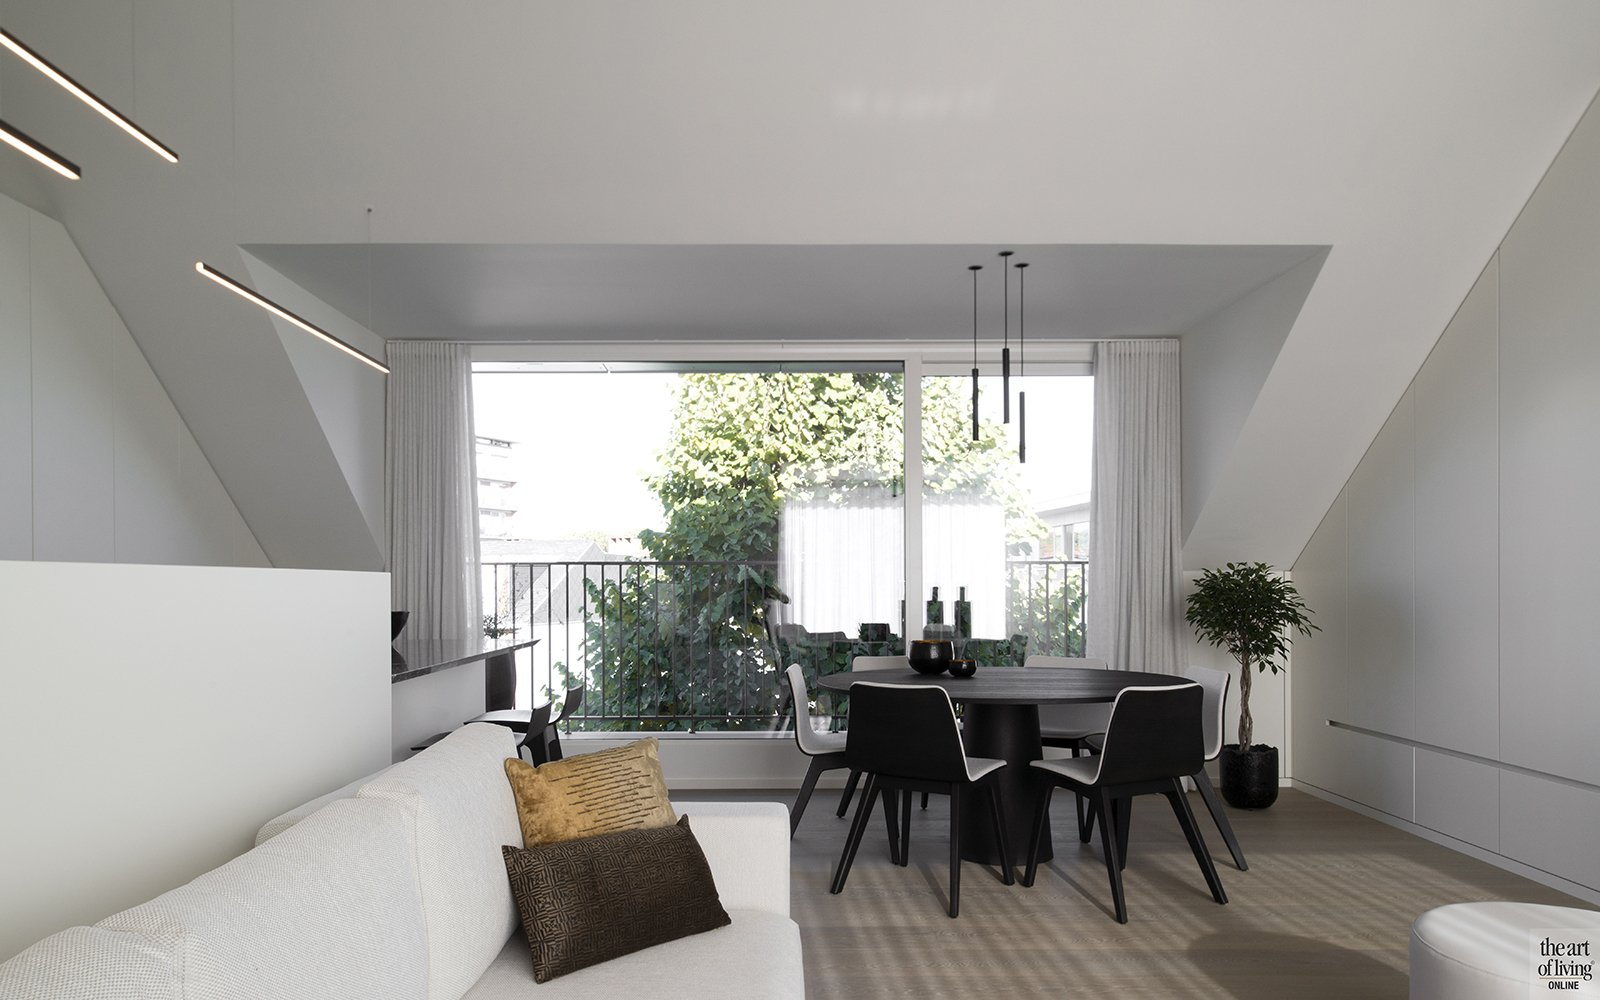 QTD, woonkamer, exclusief, modern, the art of living